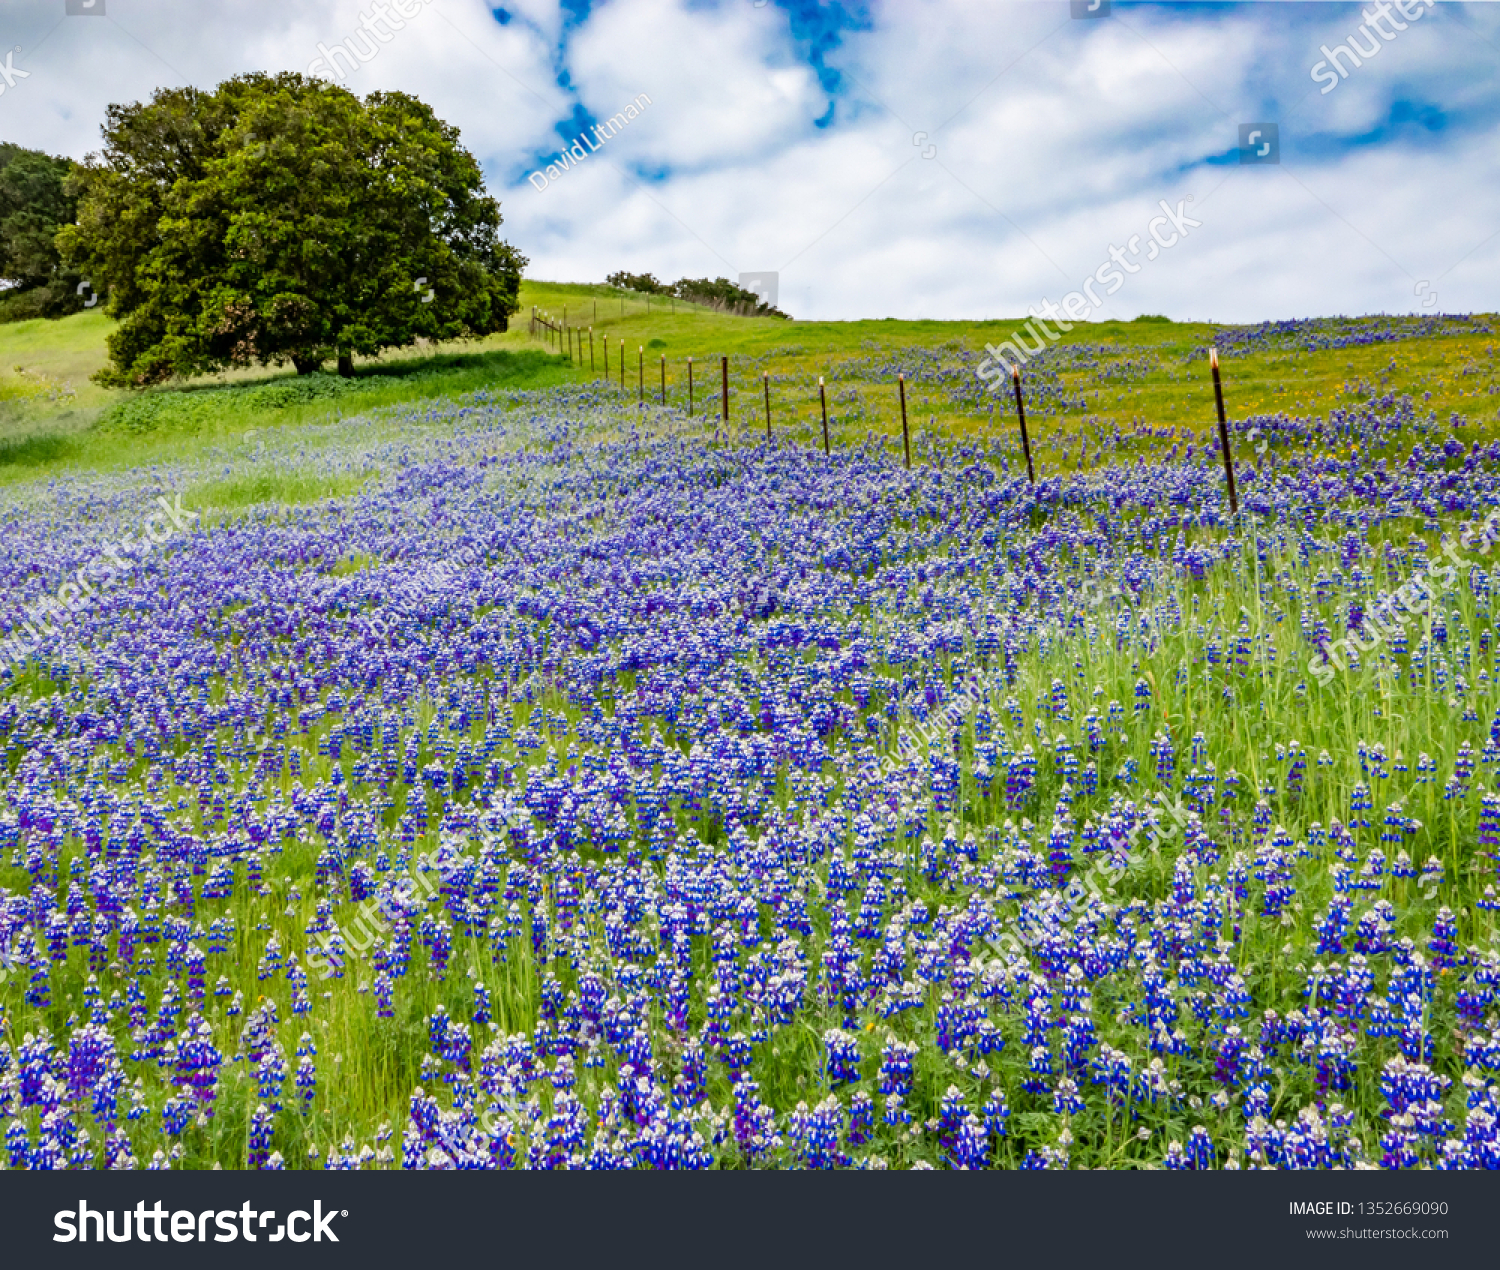 """A super bloom (""""superbloom"""") of colorful blue and purple Sky Lupine wildflowers (Lupinus nanus) covers the ground in the hills of Monterey, California, with a with Coastal Live Oak tree in background."""